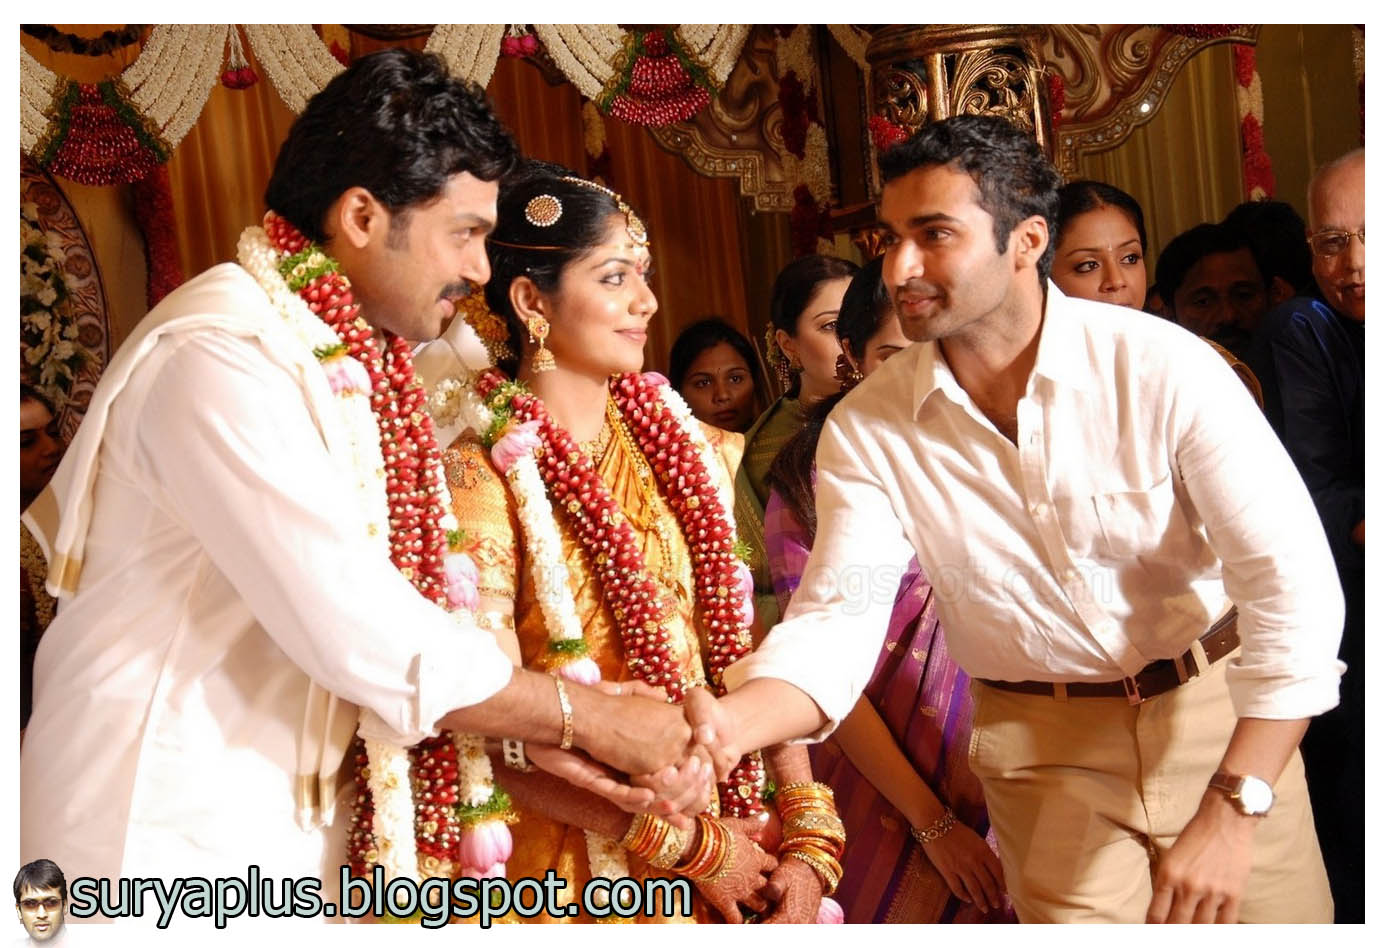 Large Hd Photo Of Tamil Cine Actor Karthi Wedding And Marriage Reception Click To Enlarge